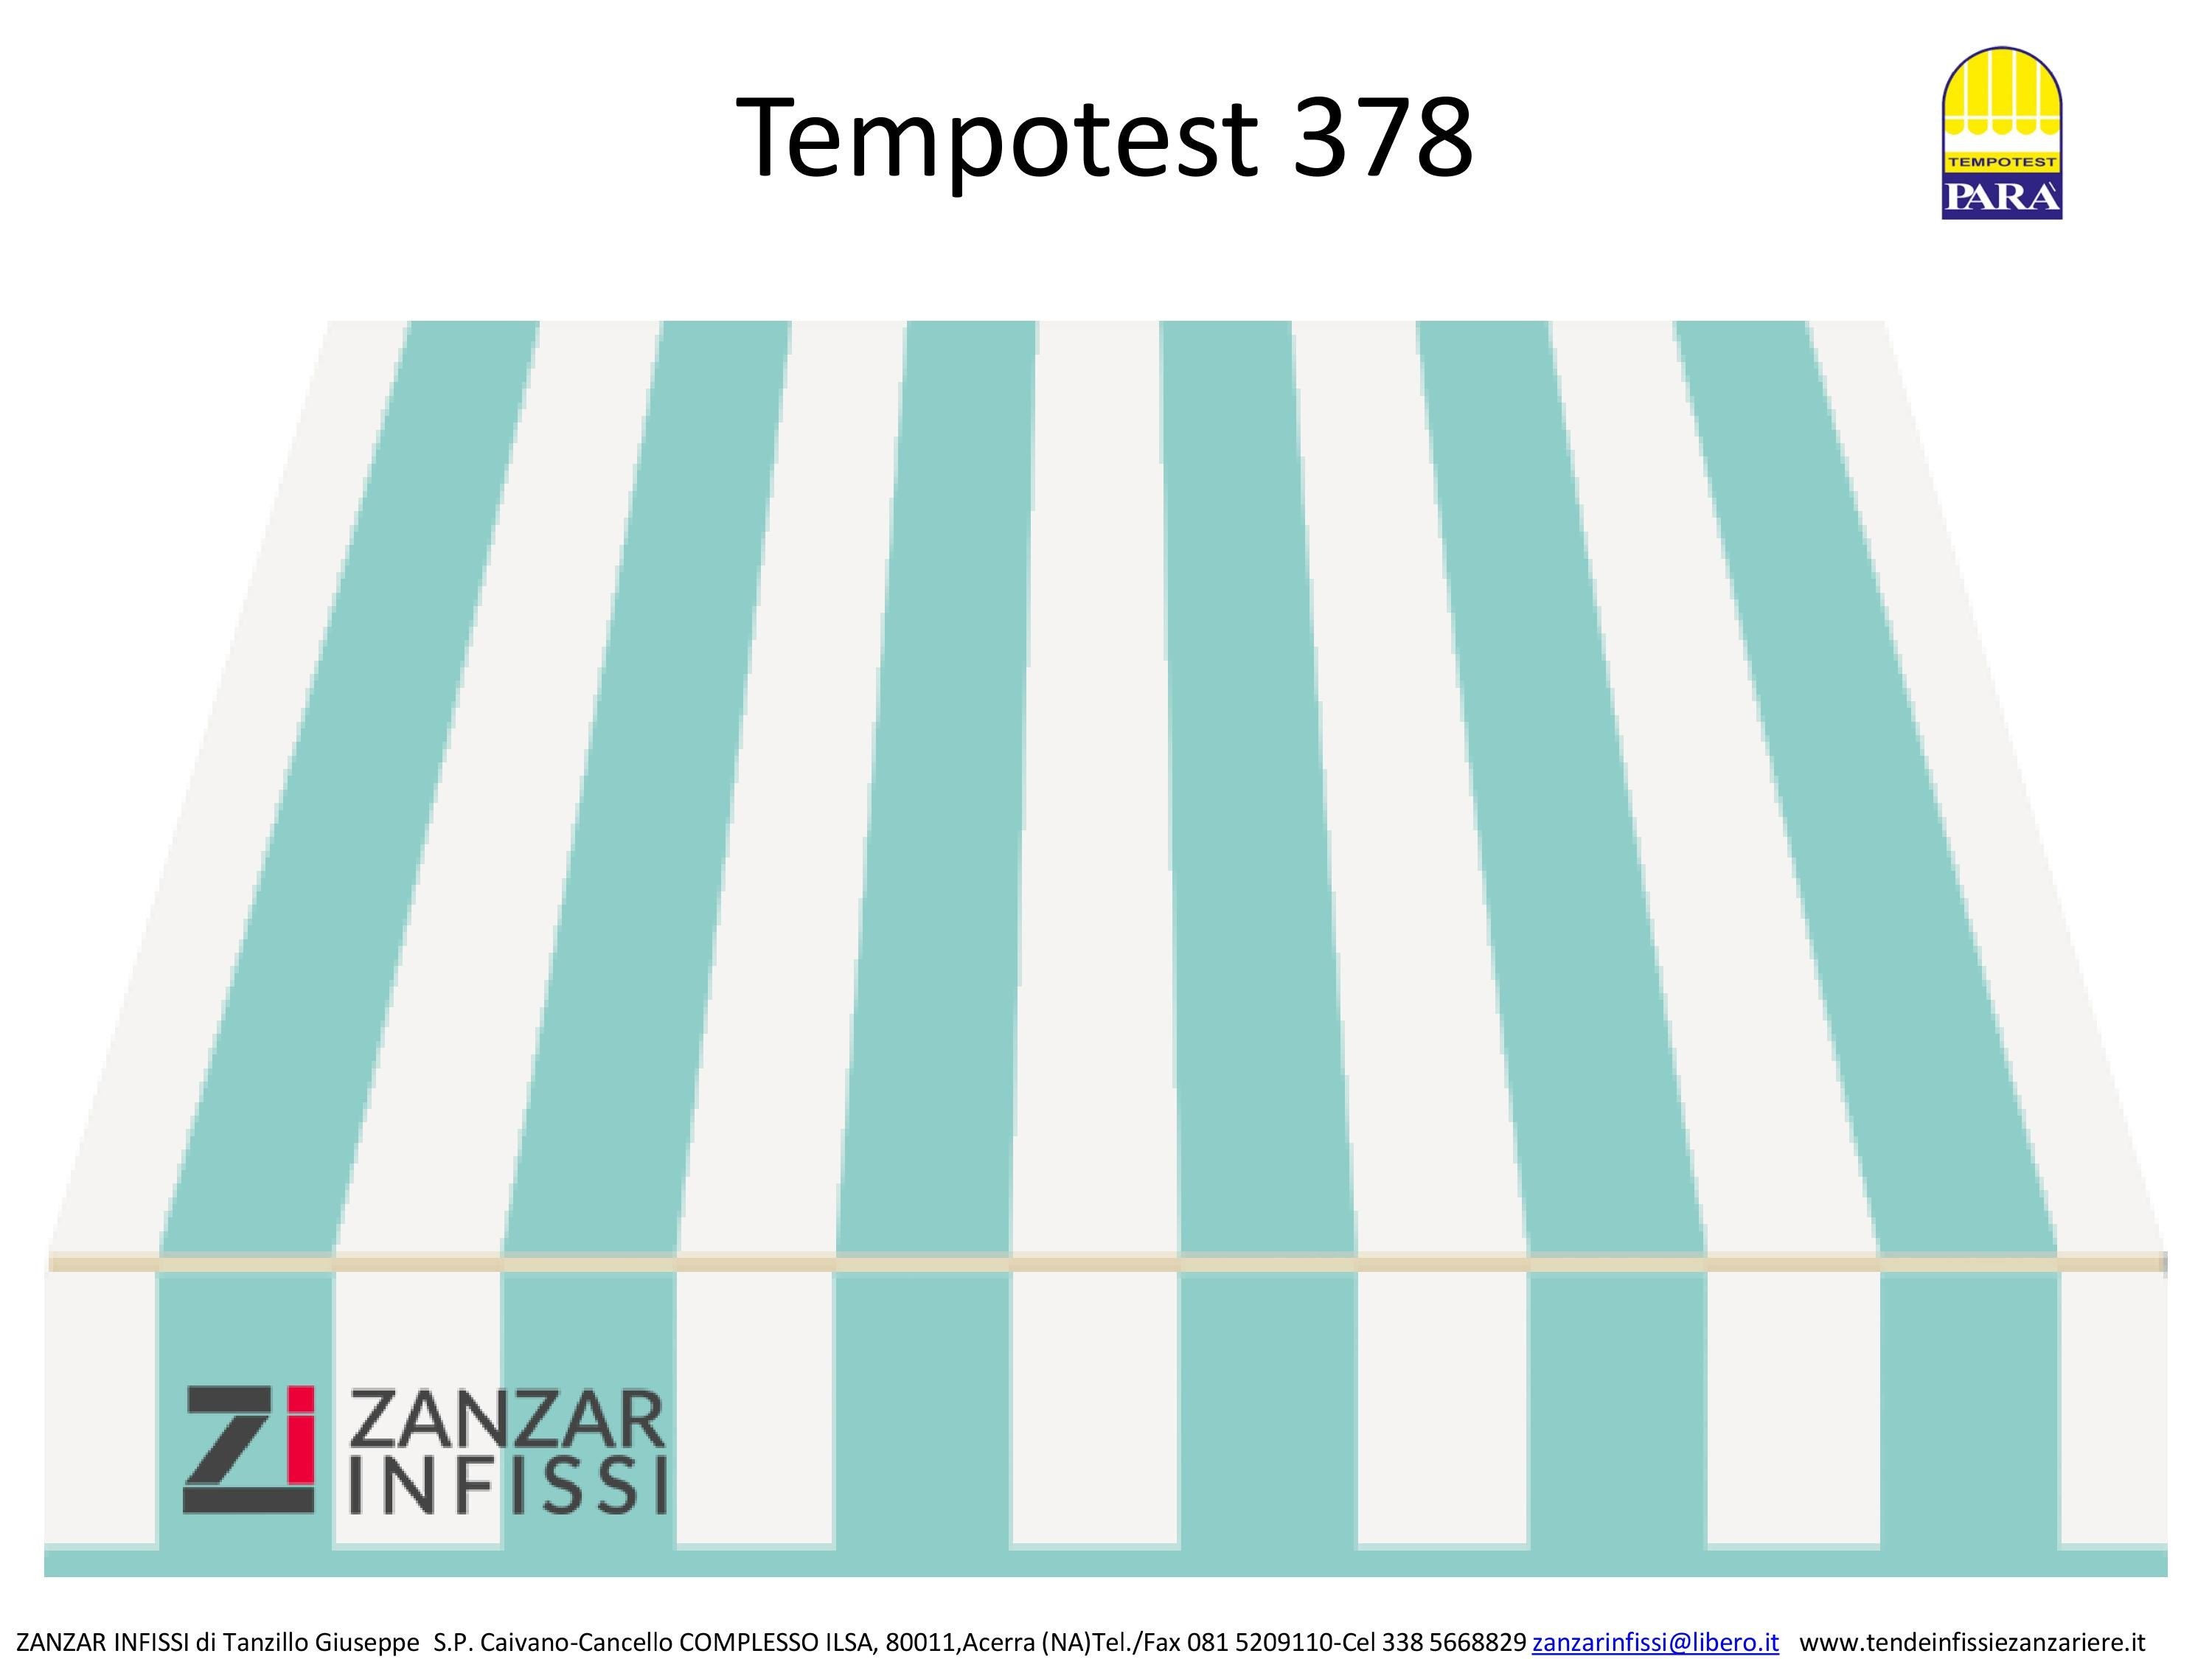 Tempotest 378